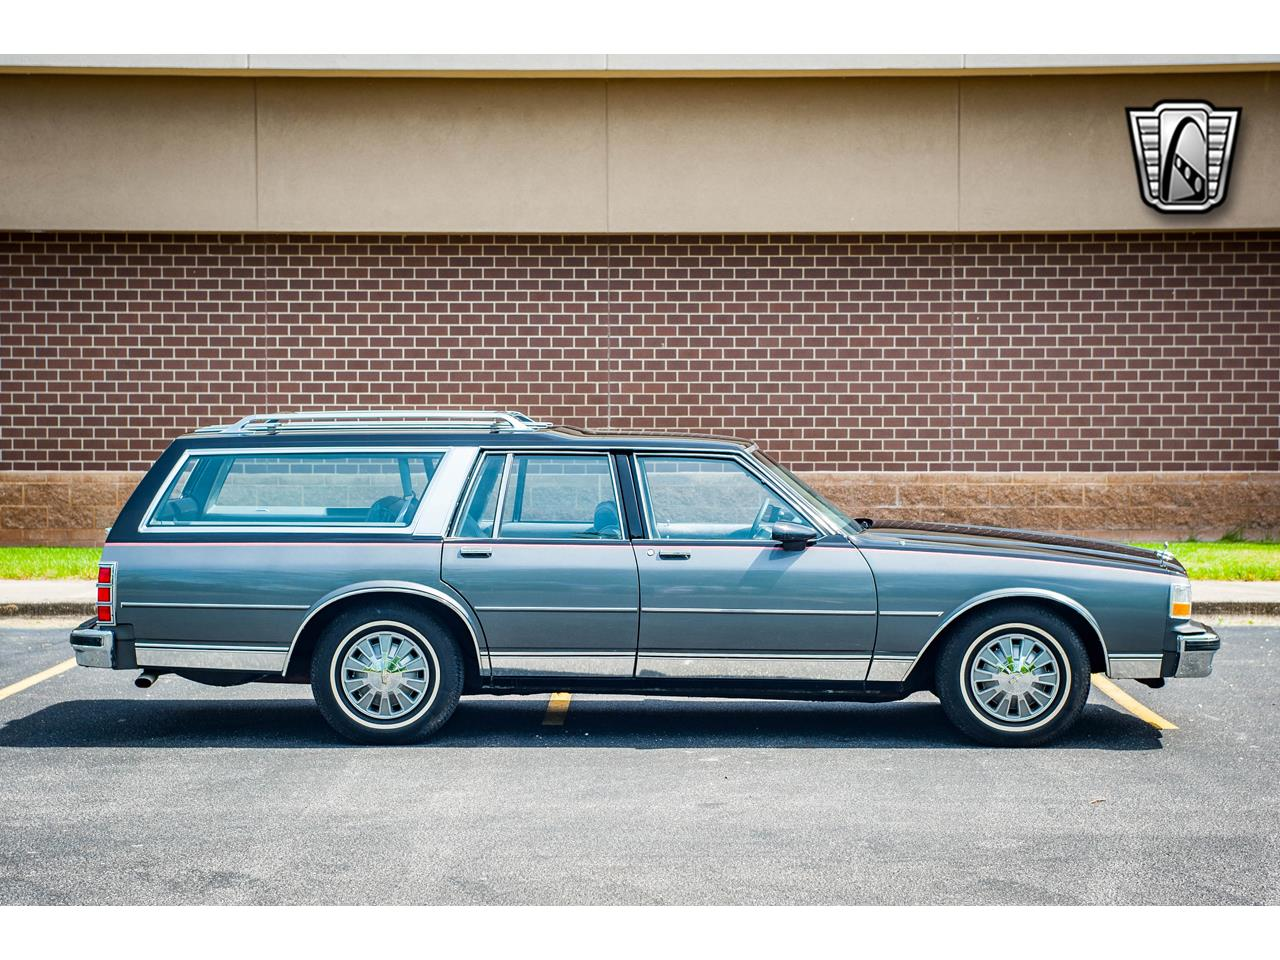 Large Picture of 1989 Caprice located in O'Fallon Illinois Offered by Gateway Classic Cars - St. Louis - QB9K